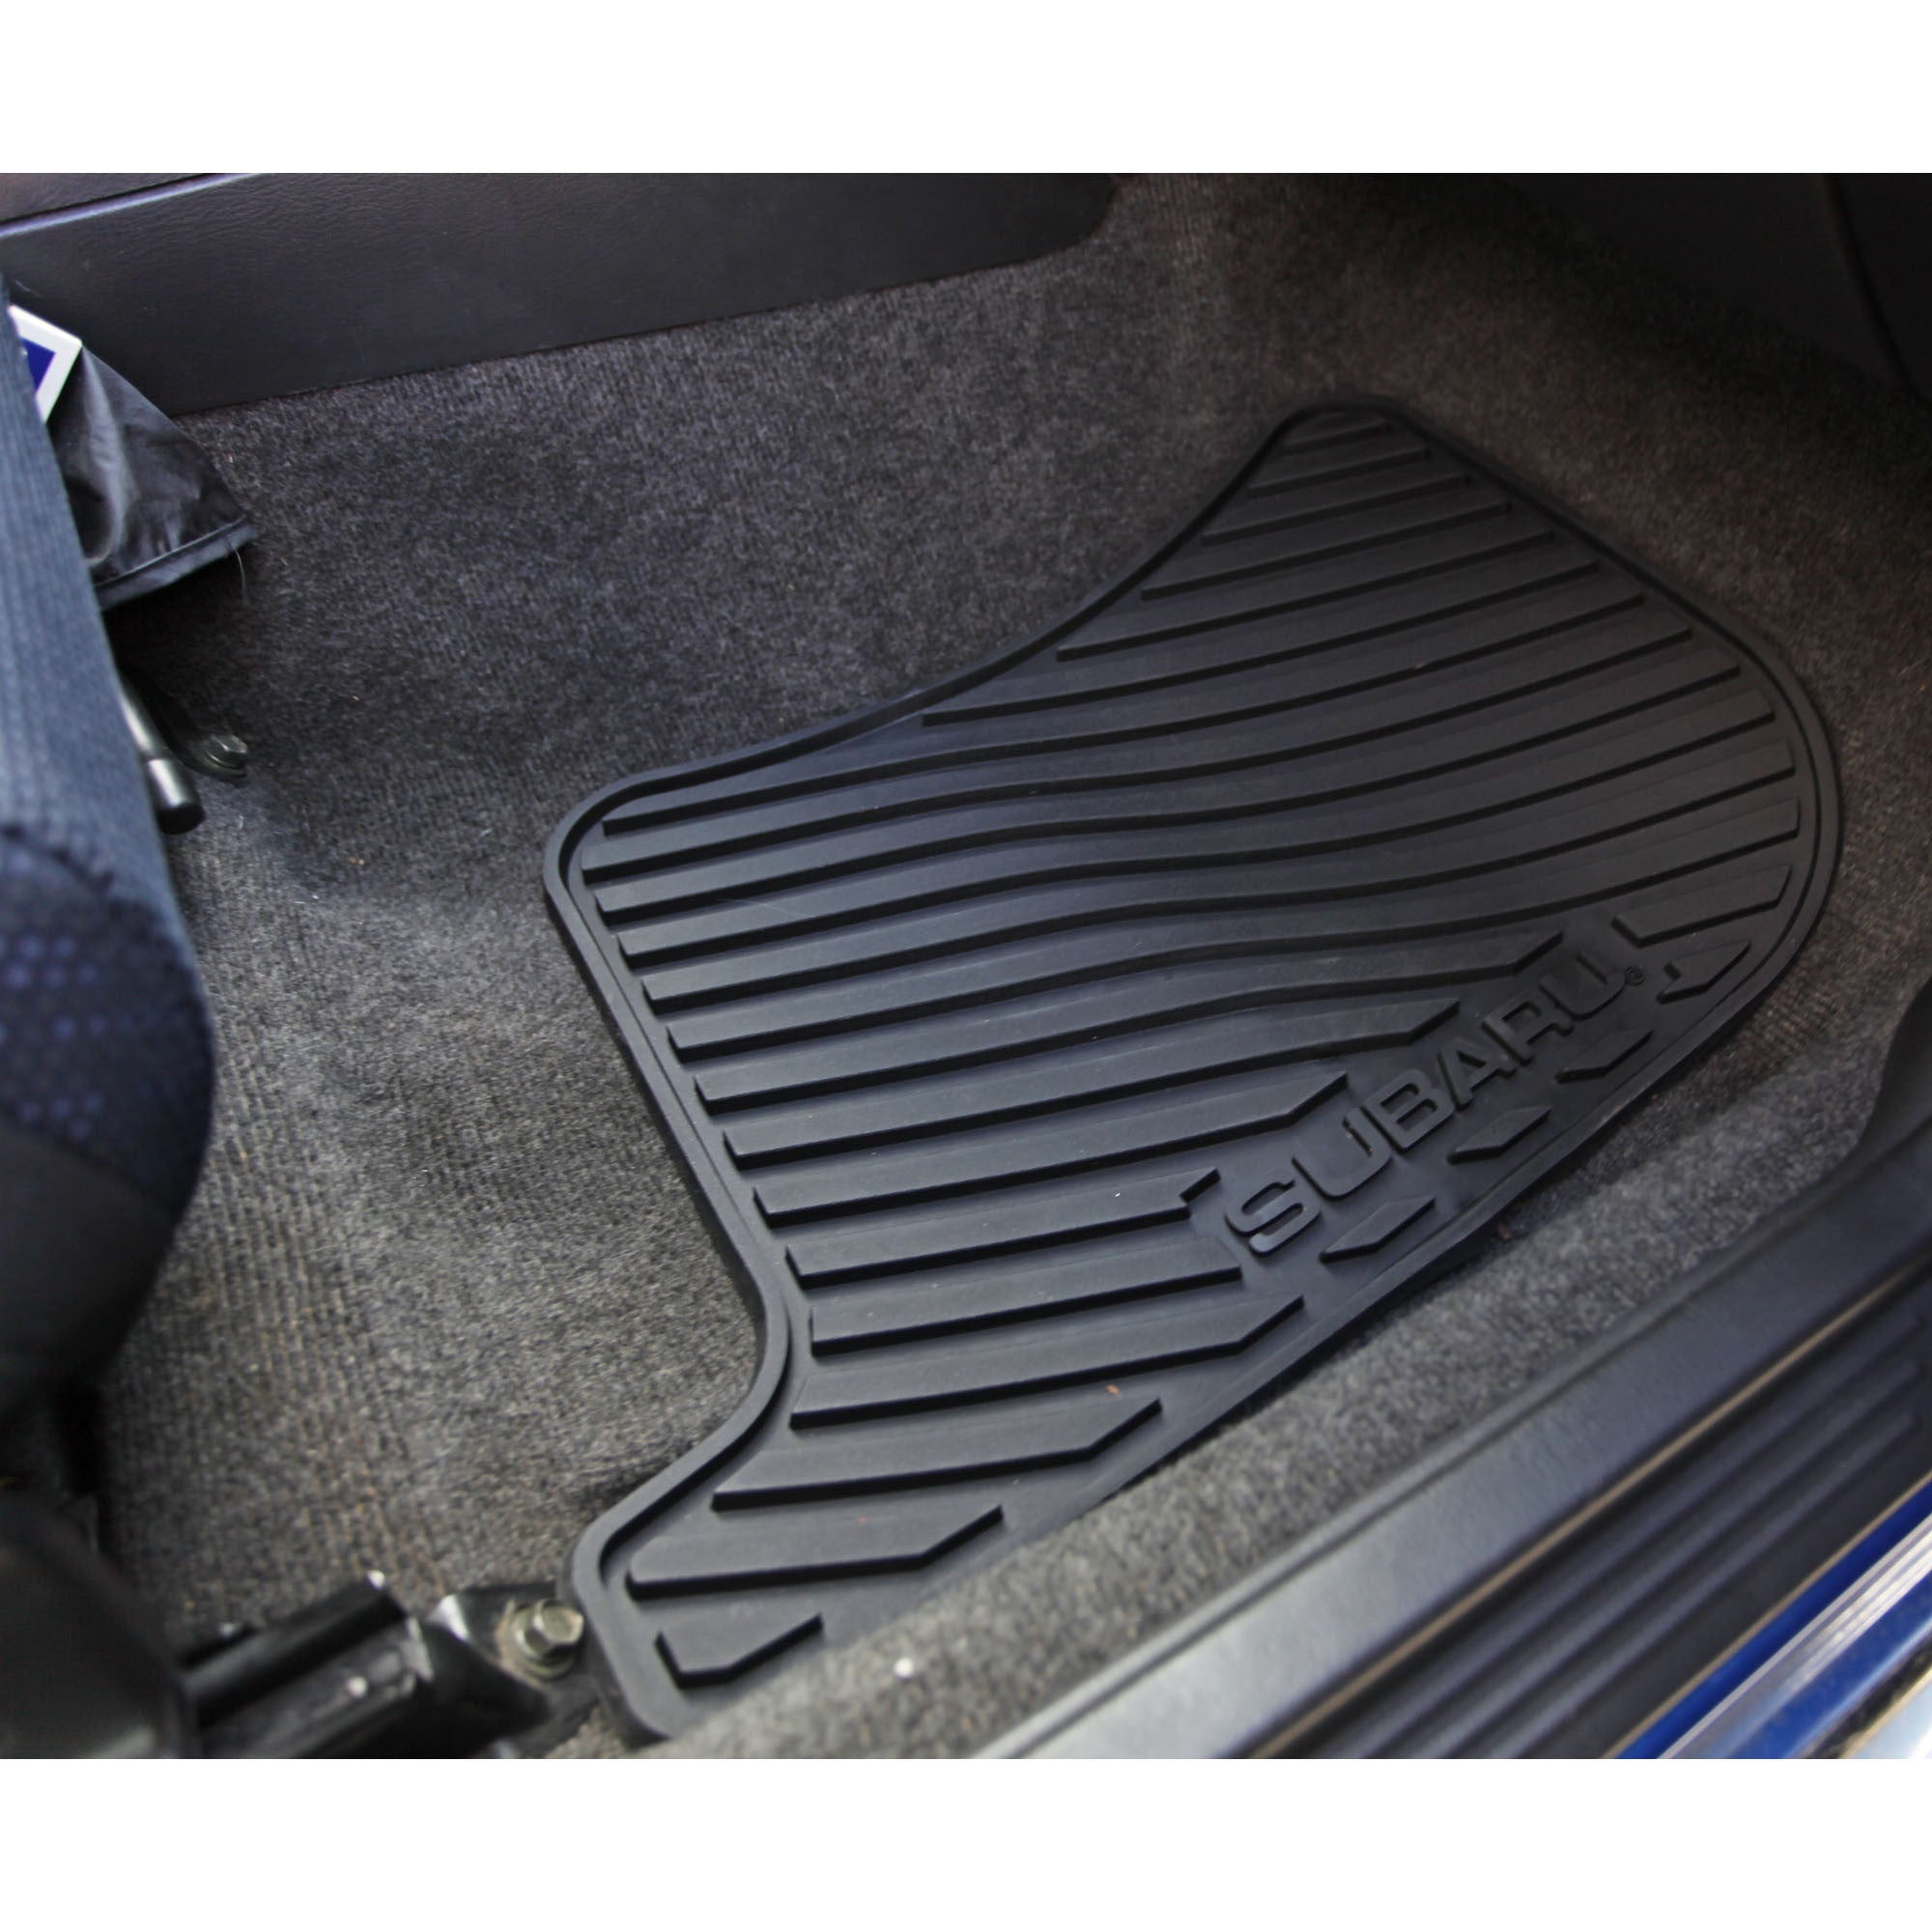 rubber dish heavy all drisen store mats for deep trucks floor black cars suv duty piece season